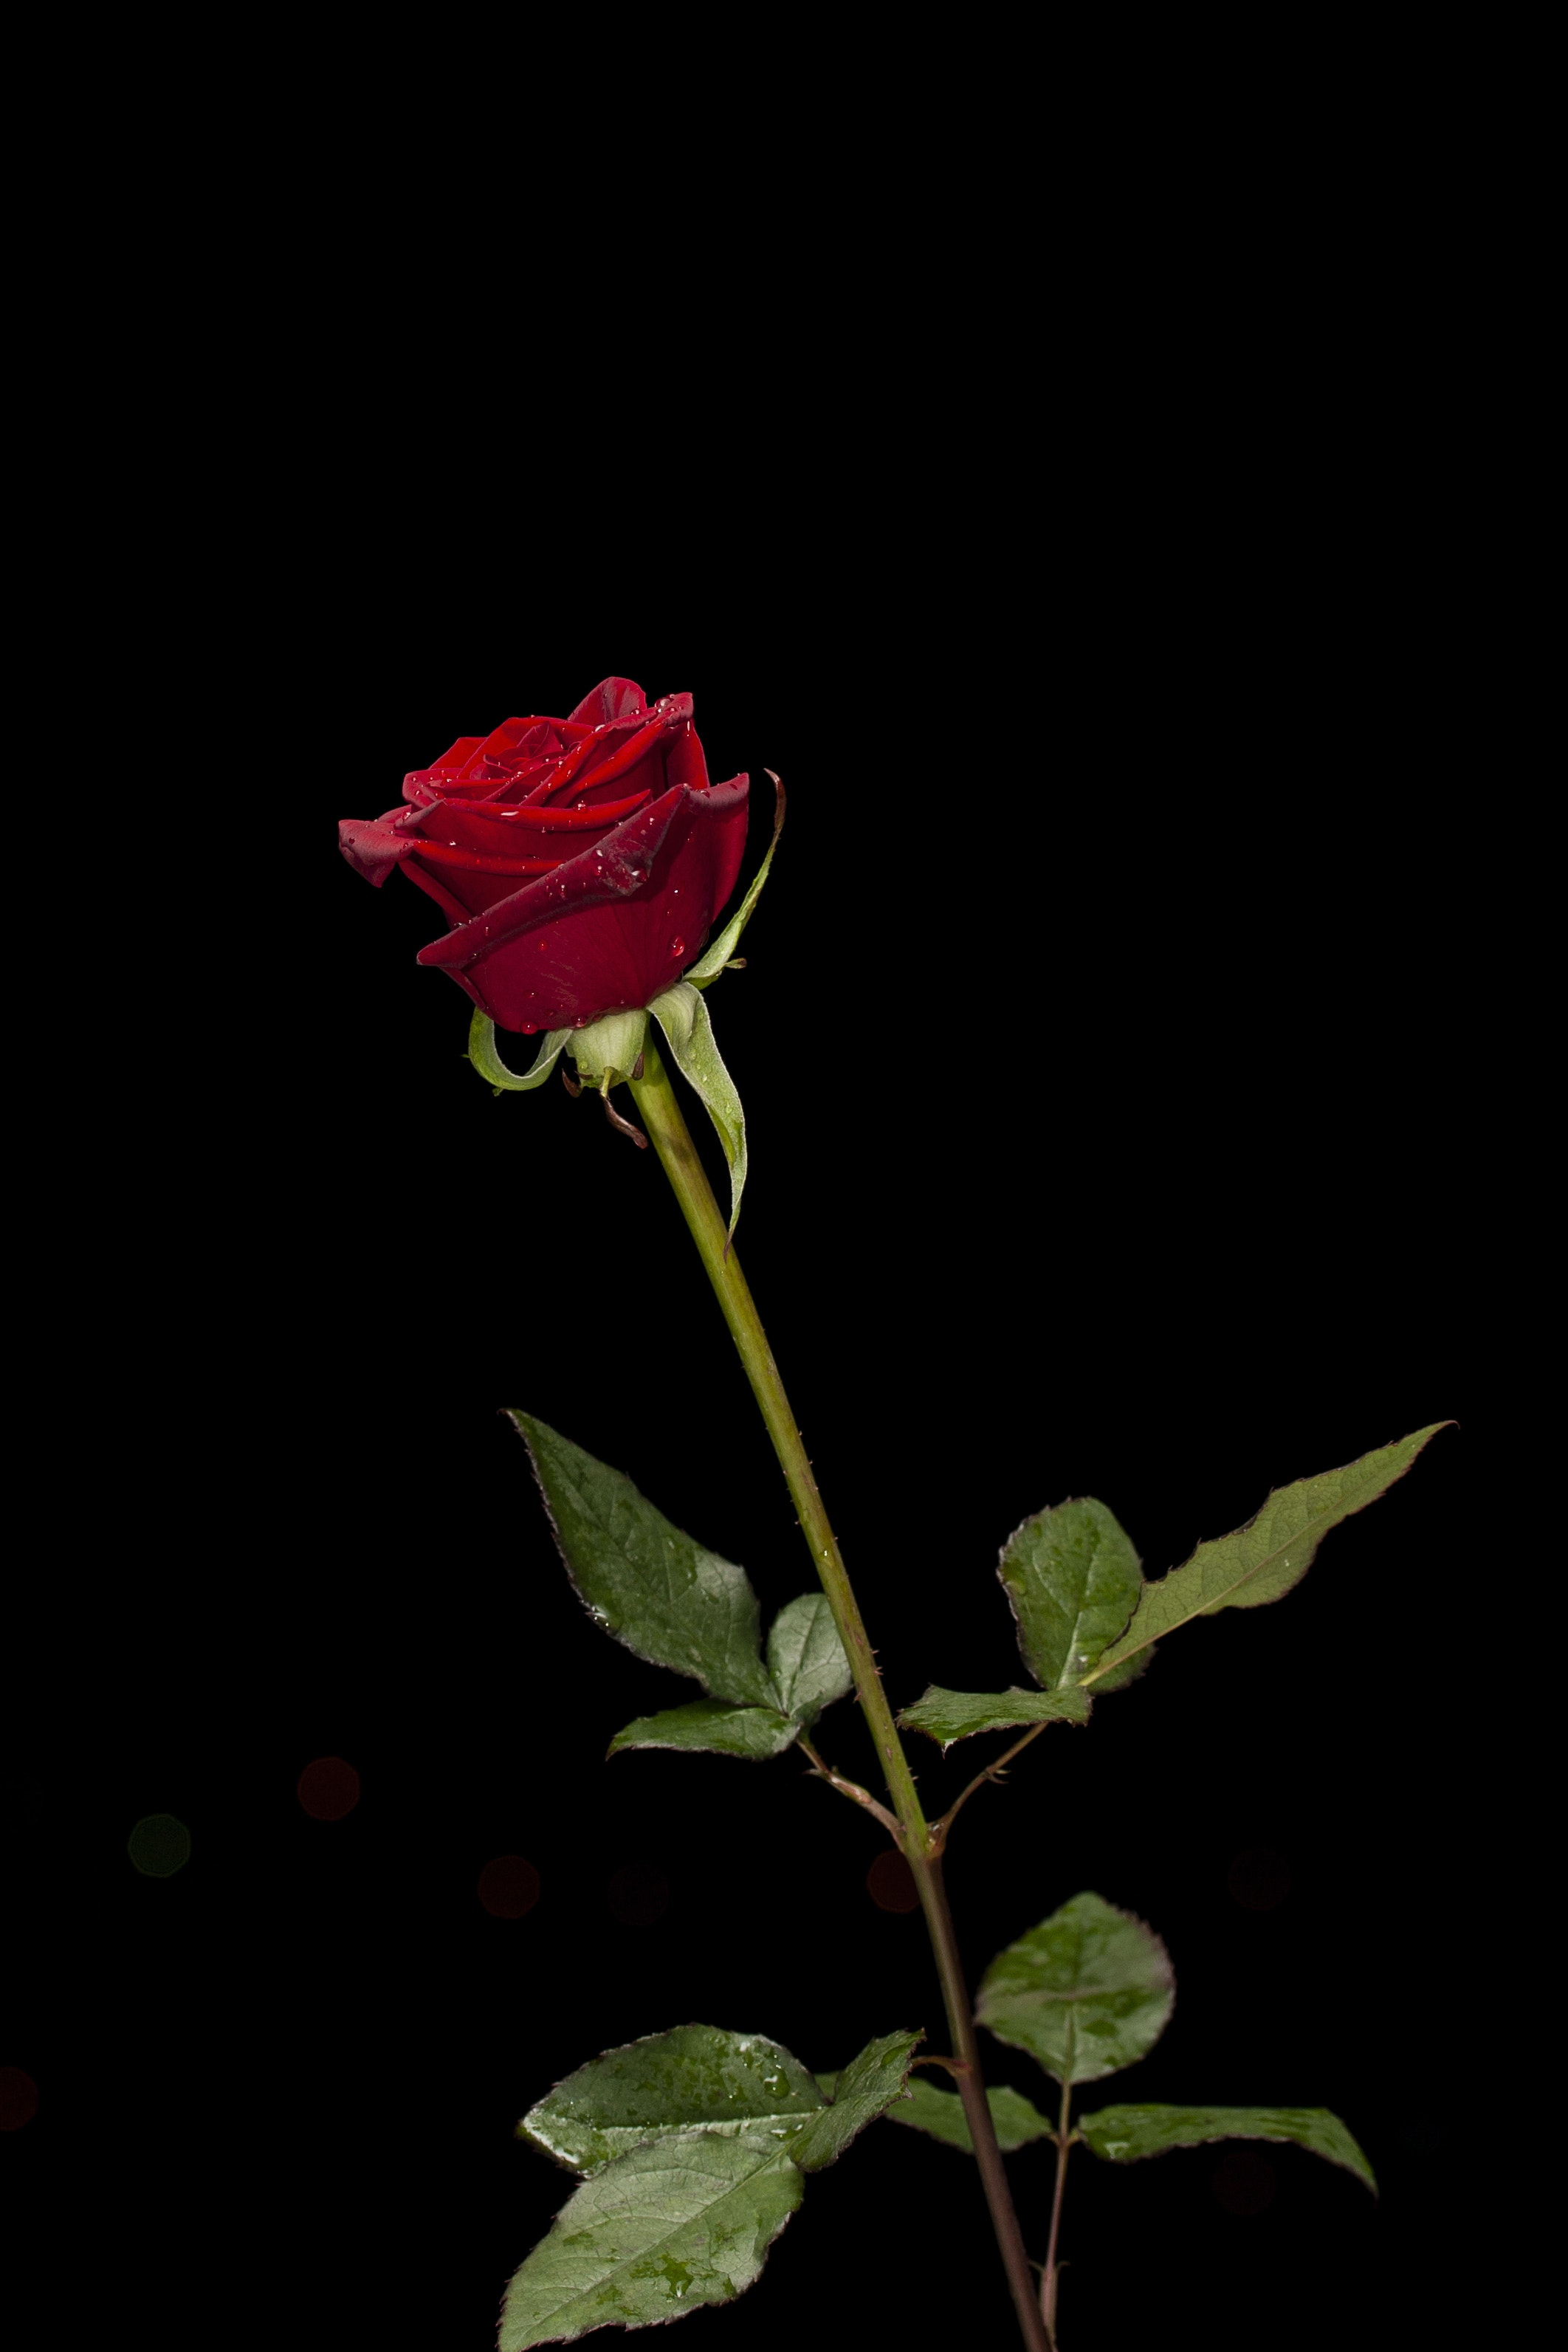 Red Rose Wallpapers on